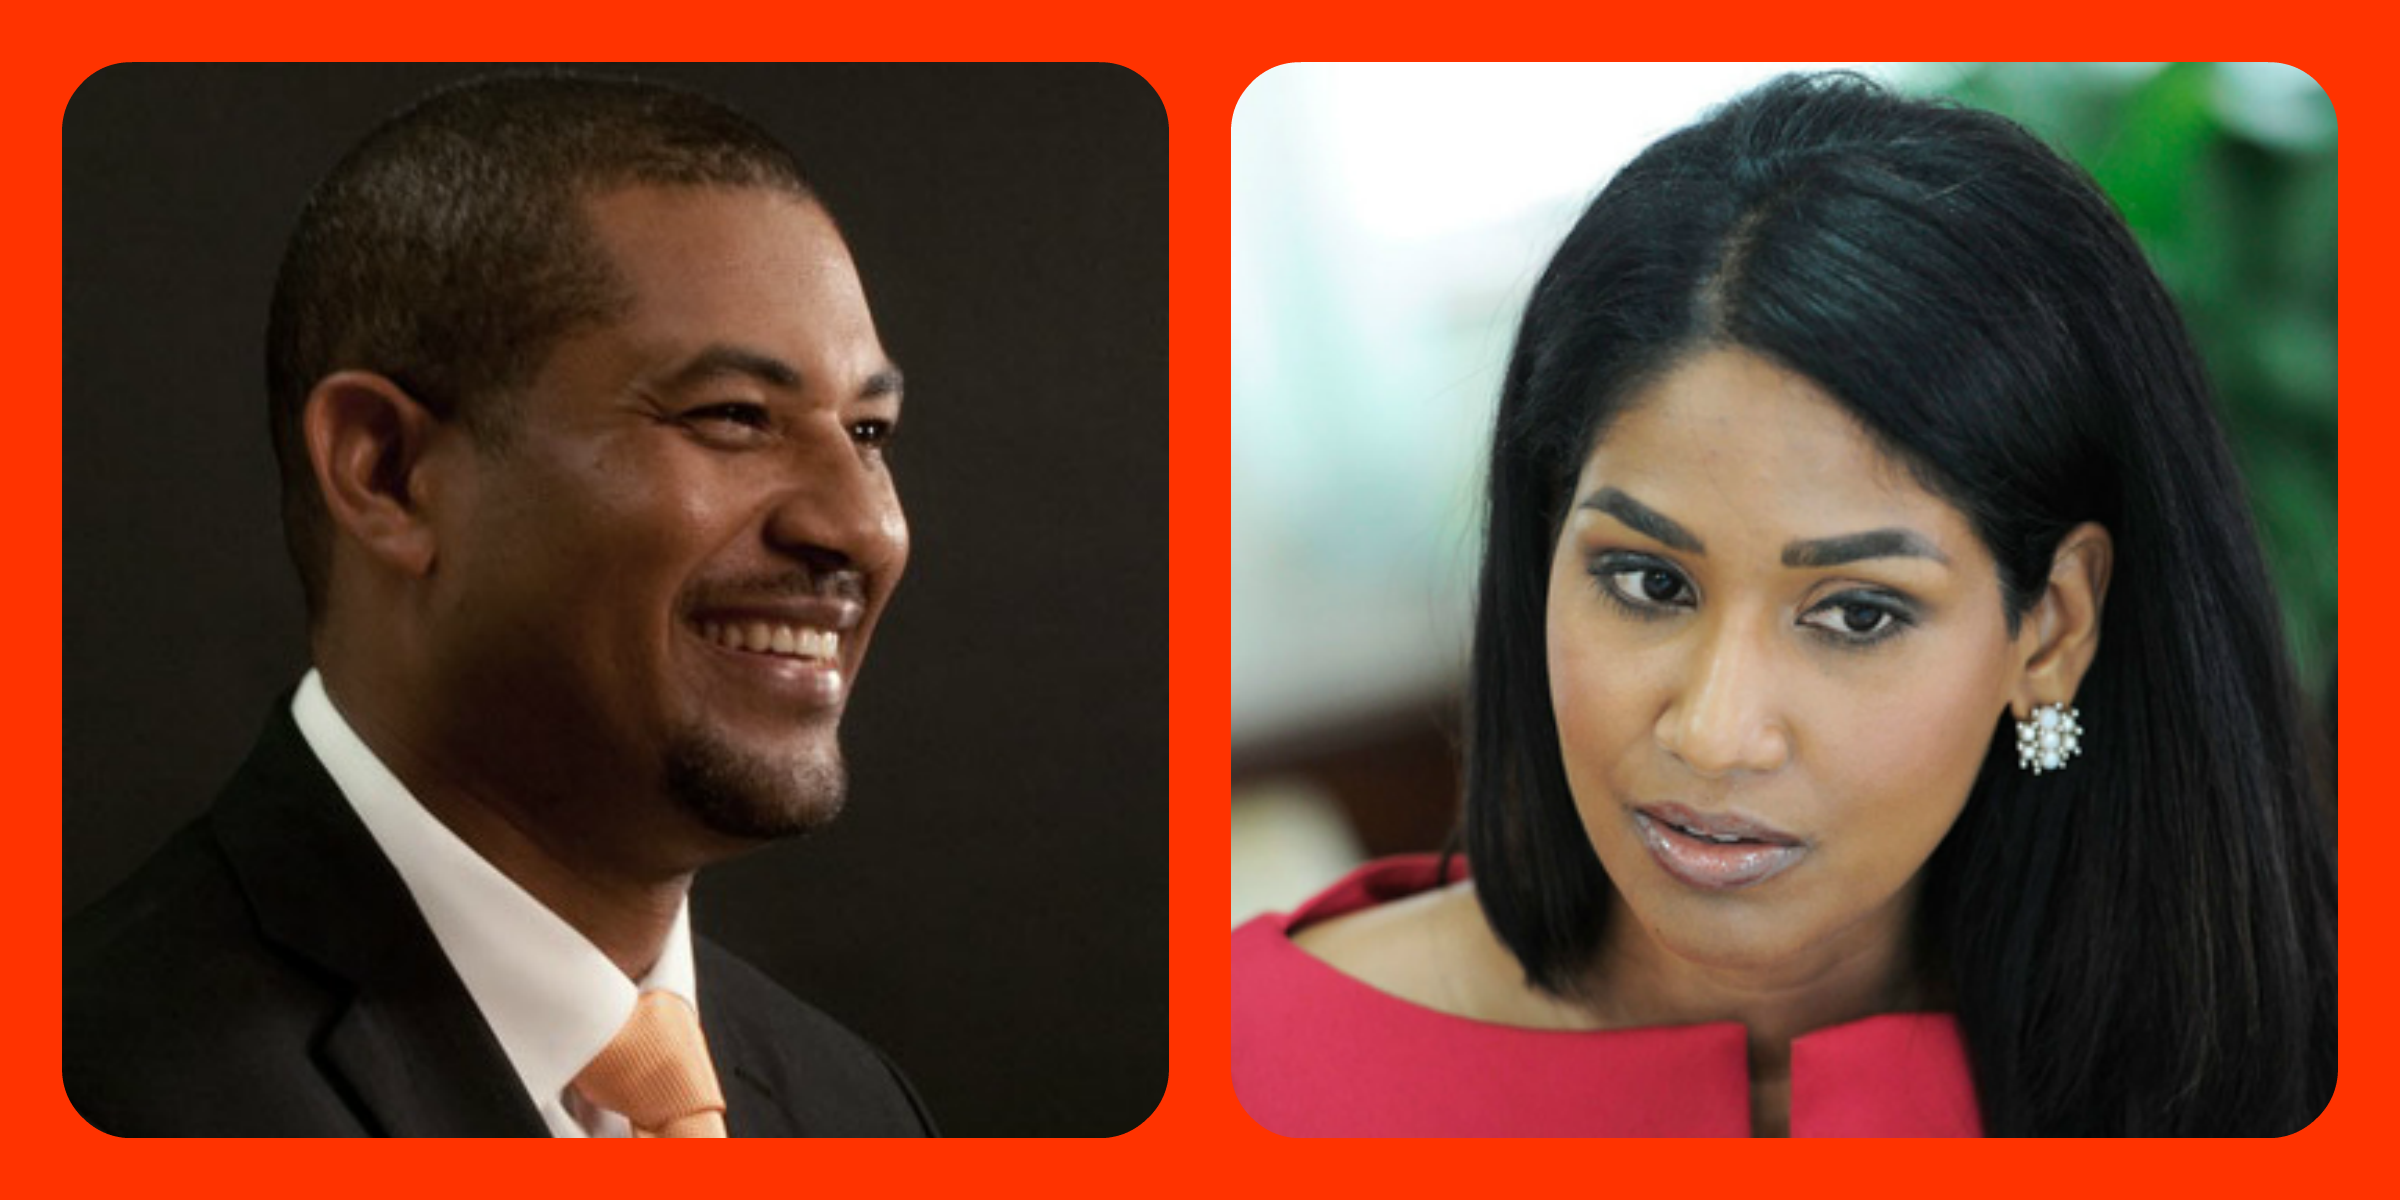 Hanna & Phillips Contending for PNP VP?